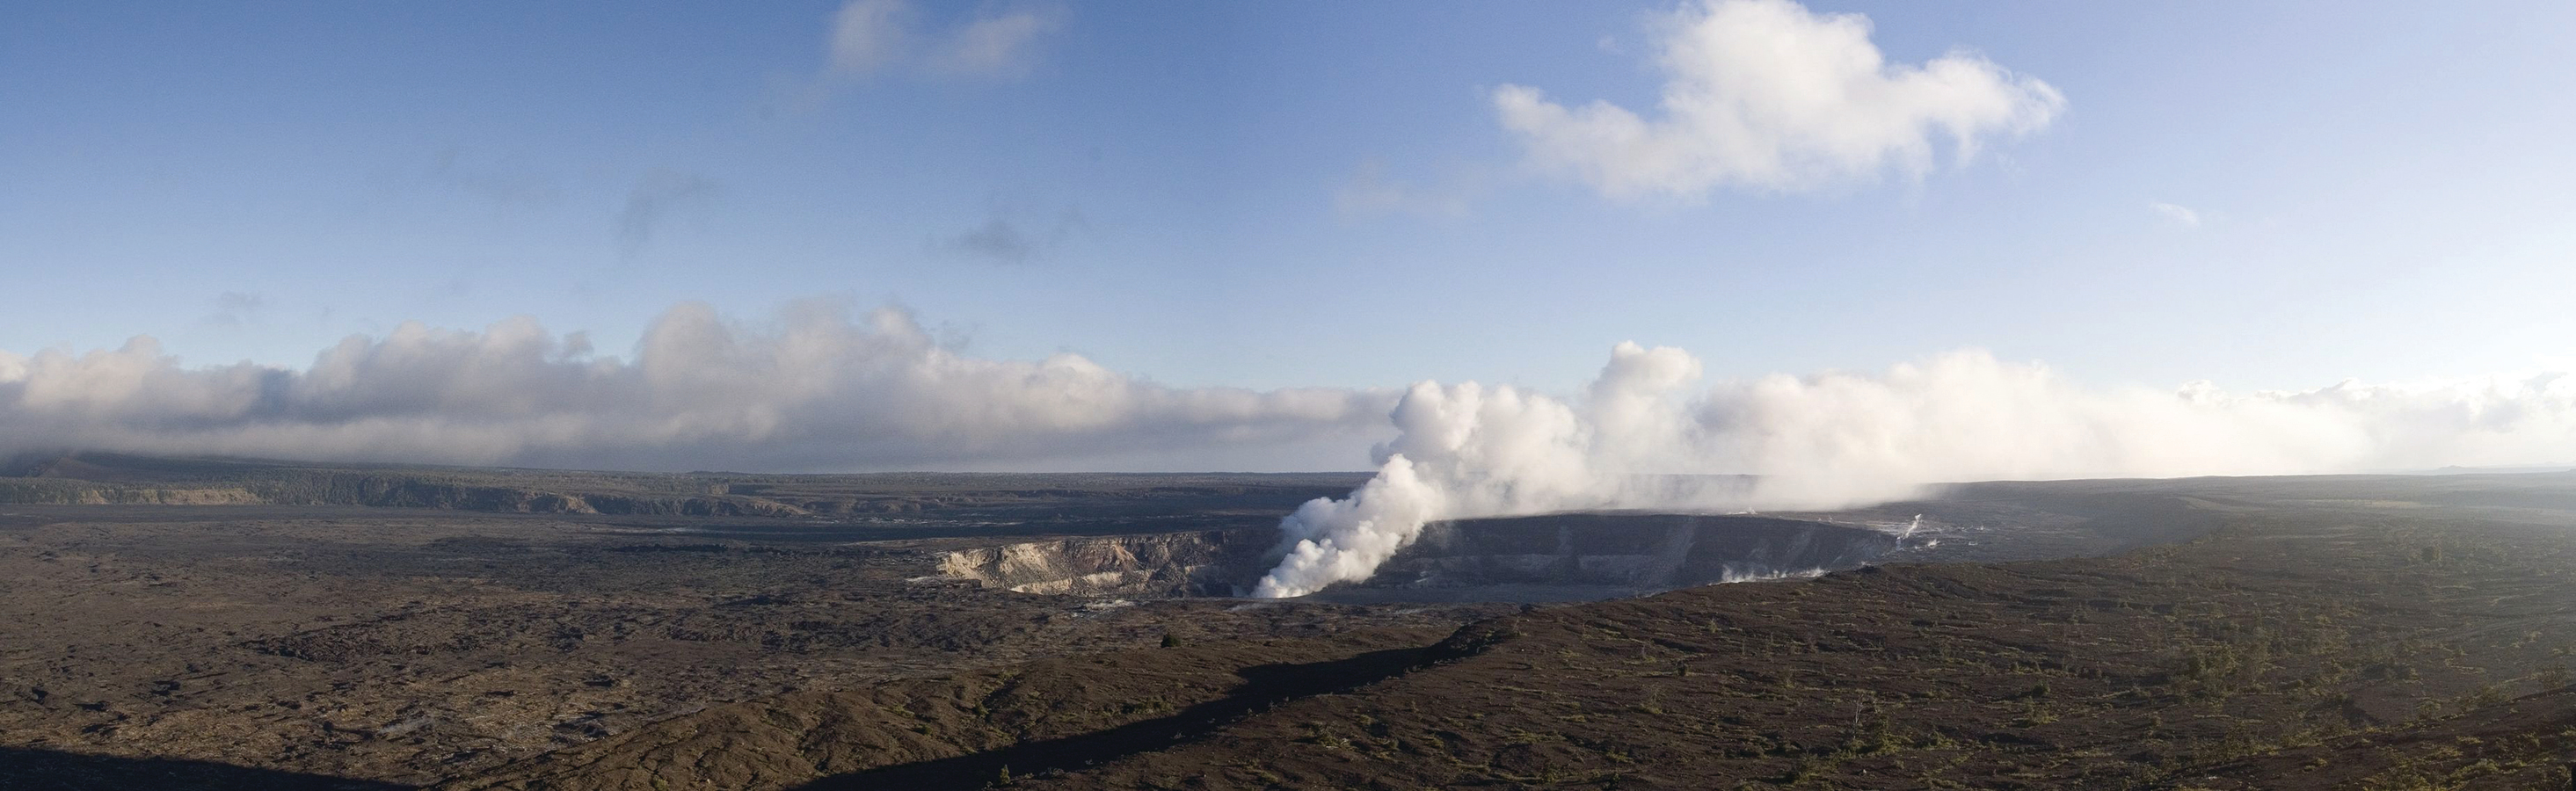 Geologists Said Kilauea May Be Entering A Phase Of Explosive Eruptions Not Seen In Nearly Century That Could Hurl Ballistic Blocks Weighing Up To 12